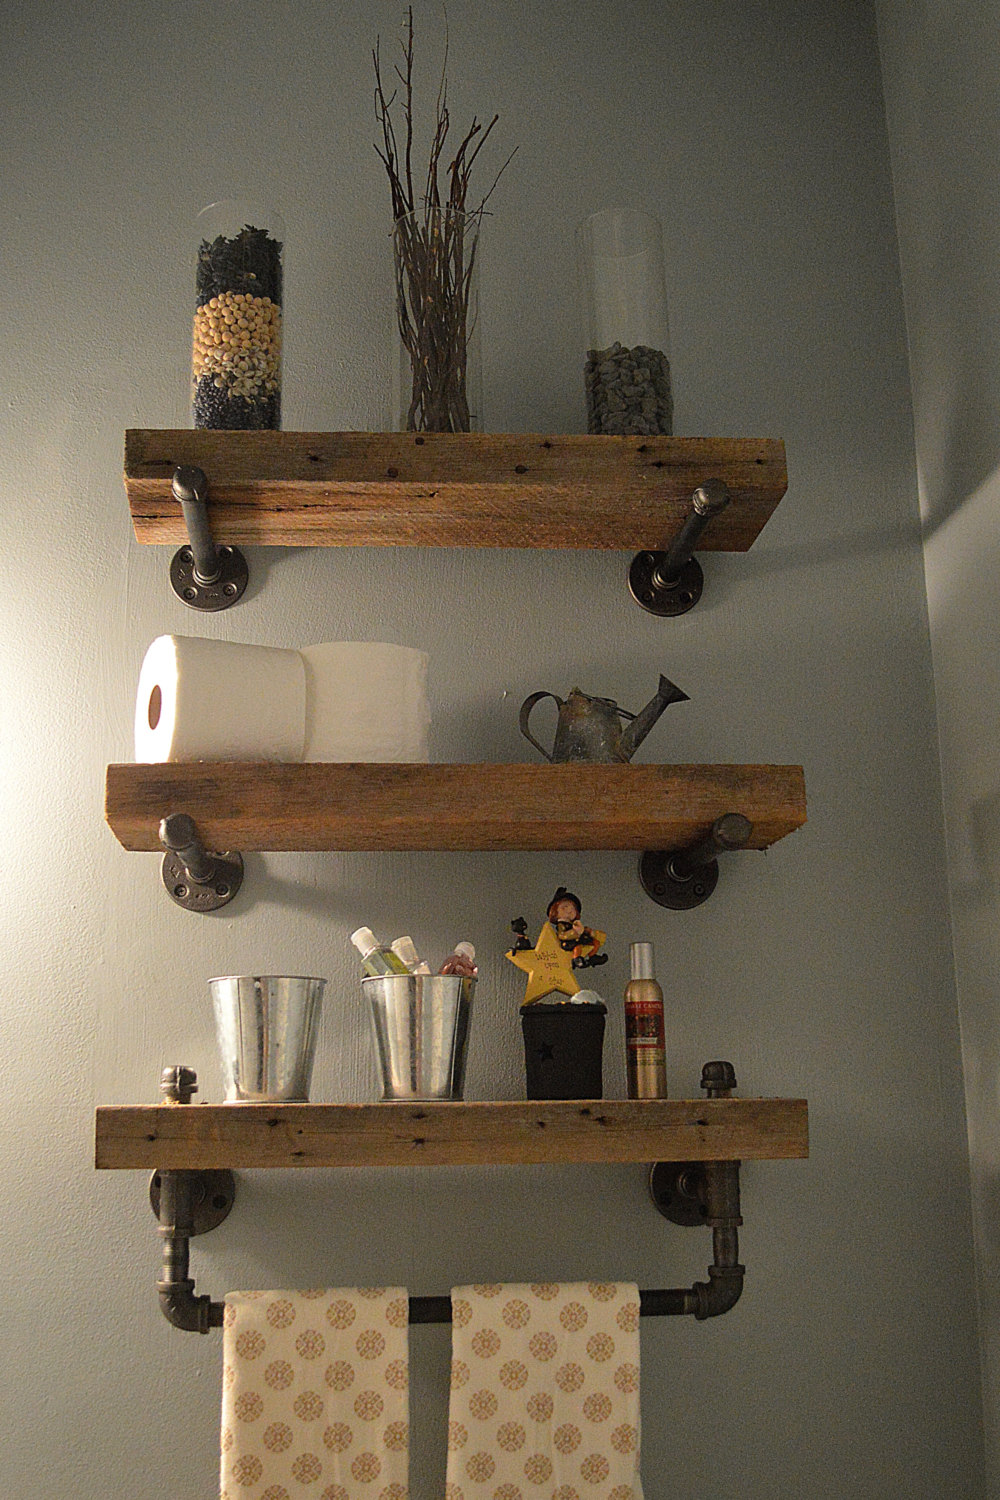 These Shelves Are Another Simple And Effective Rustic Bathroom Idea Plumbing Hardware Pipes Embled Installed As The Brackets For